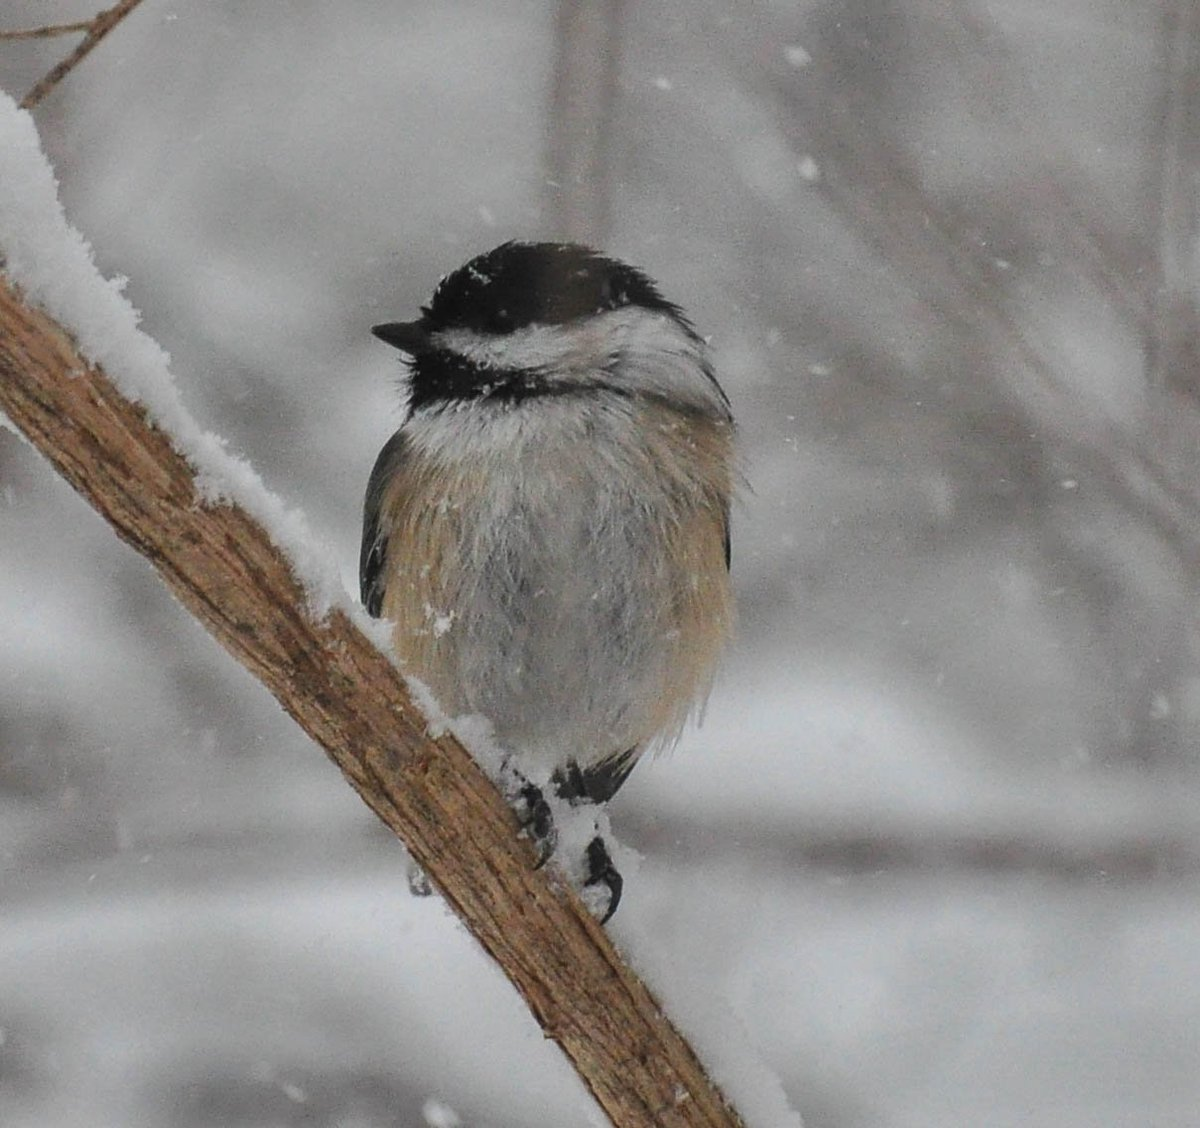 Snow birds!Black Capped Chicadee. https://t.co/Vg0w6M8fPO